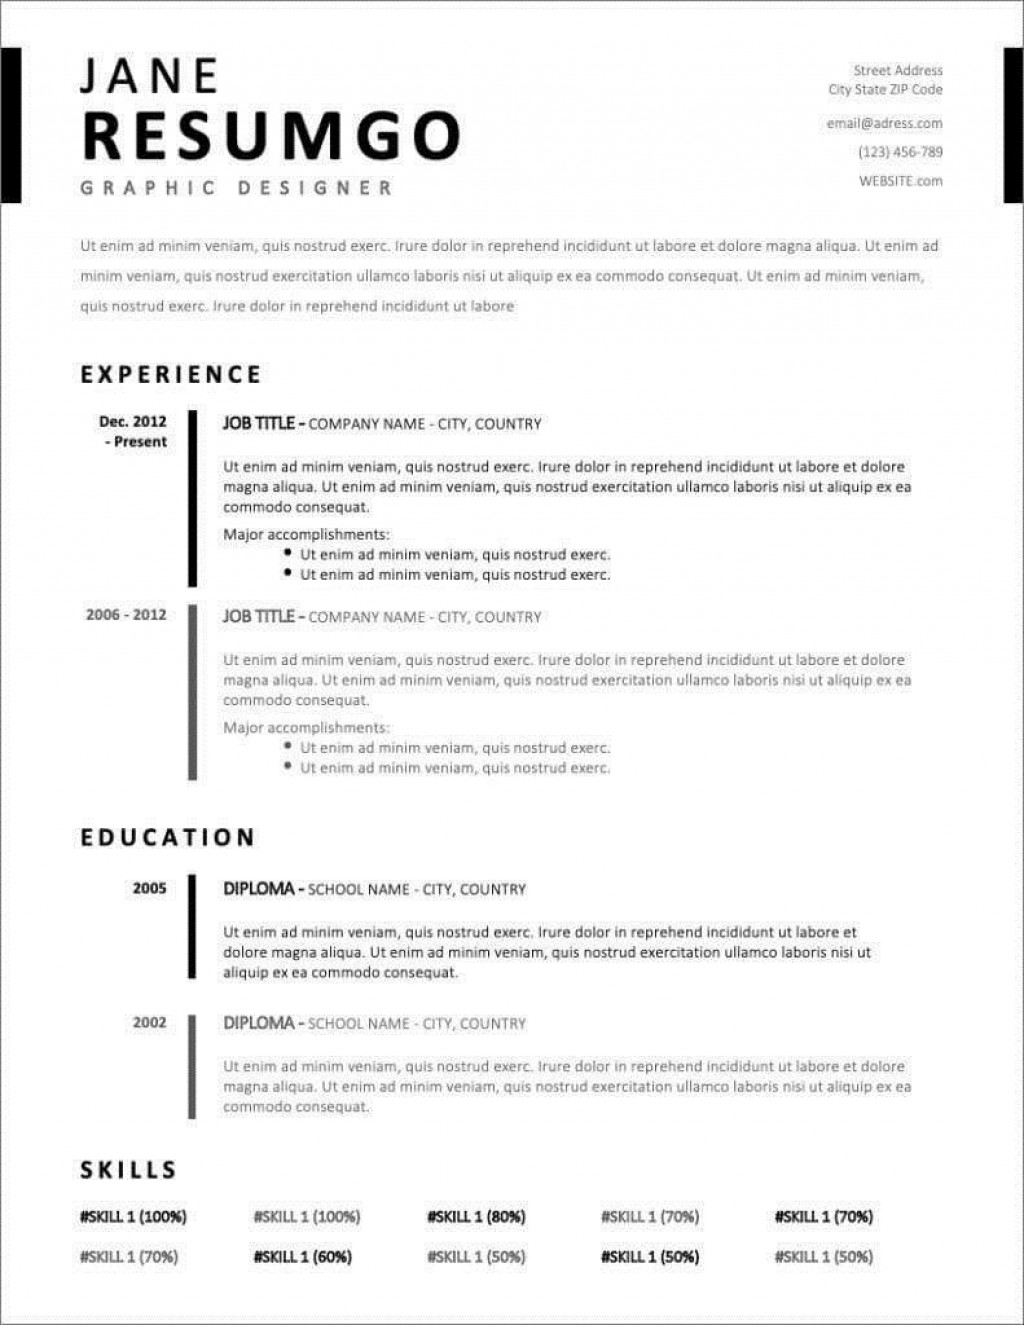 004 Unique Resume Template Free Word Download Sample  Cv With Photo Malaysia AustraliaLarge